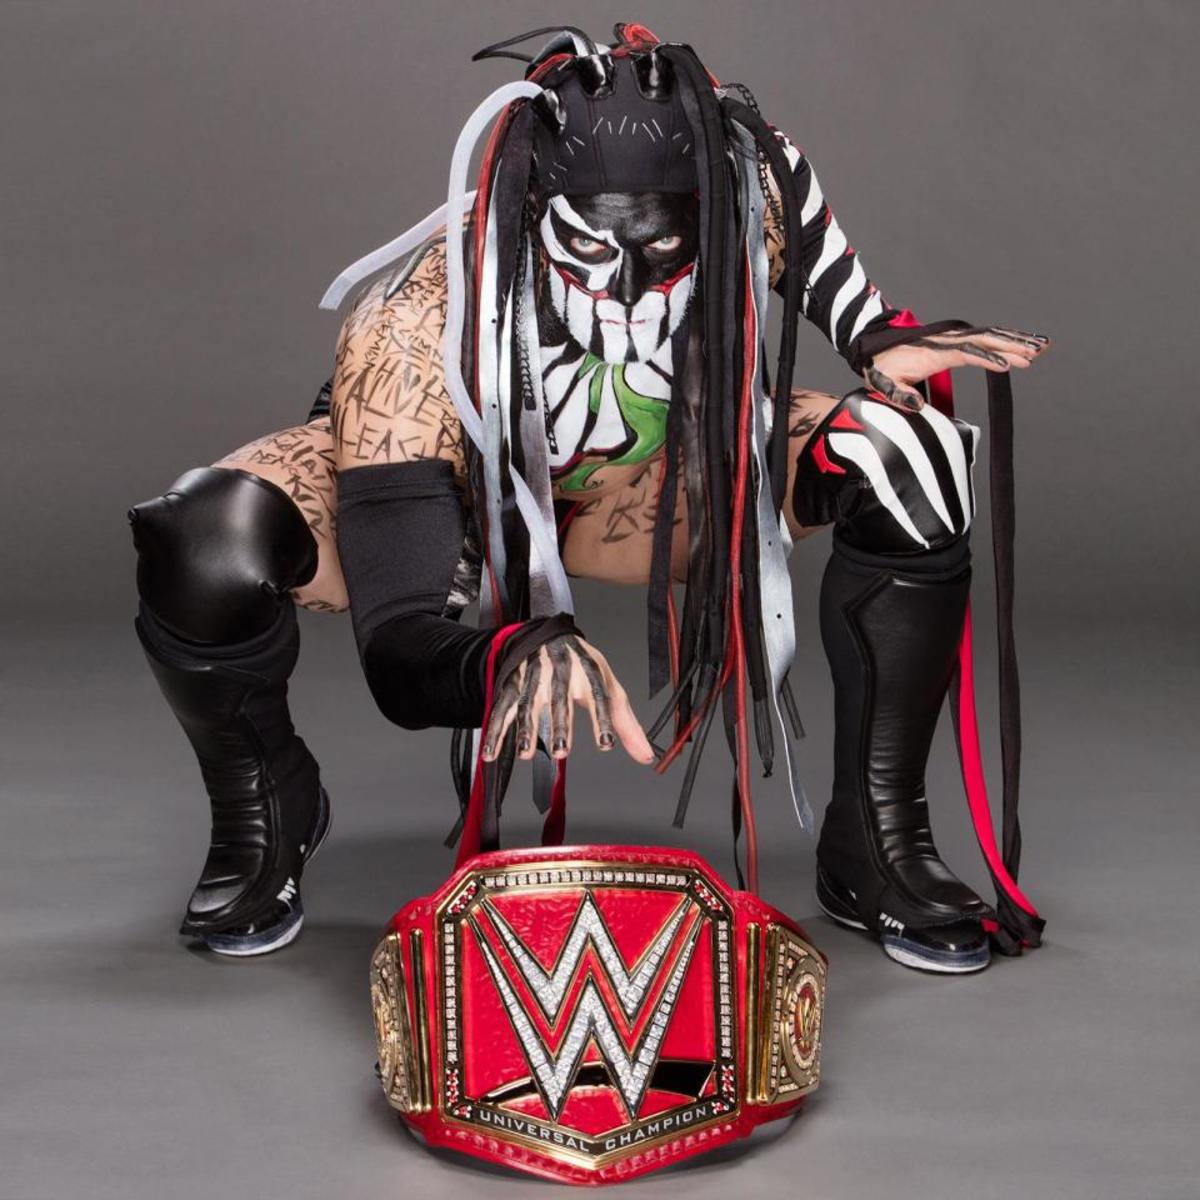 5 Facts About WWE Superstar Finn Balor